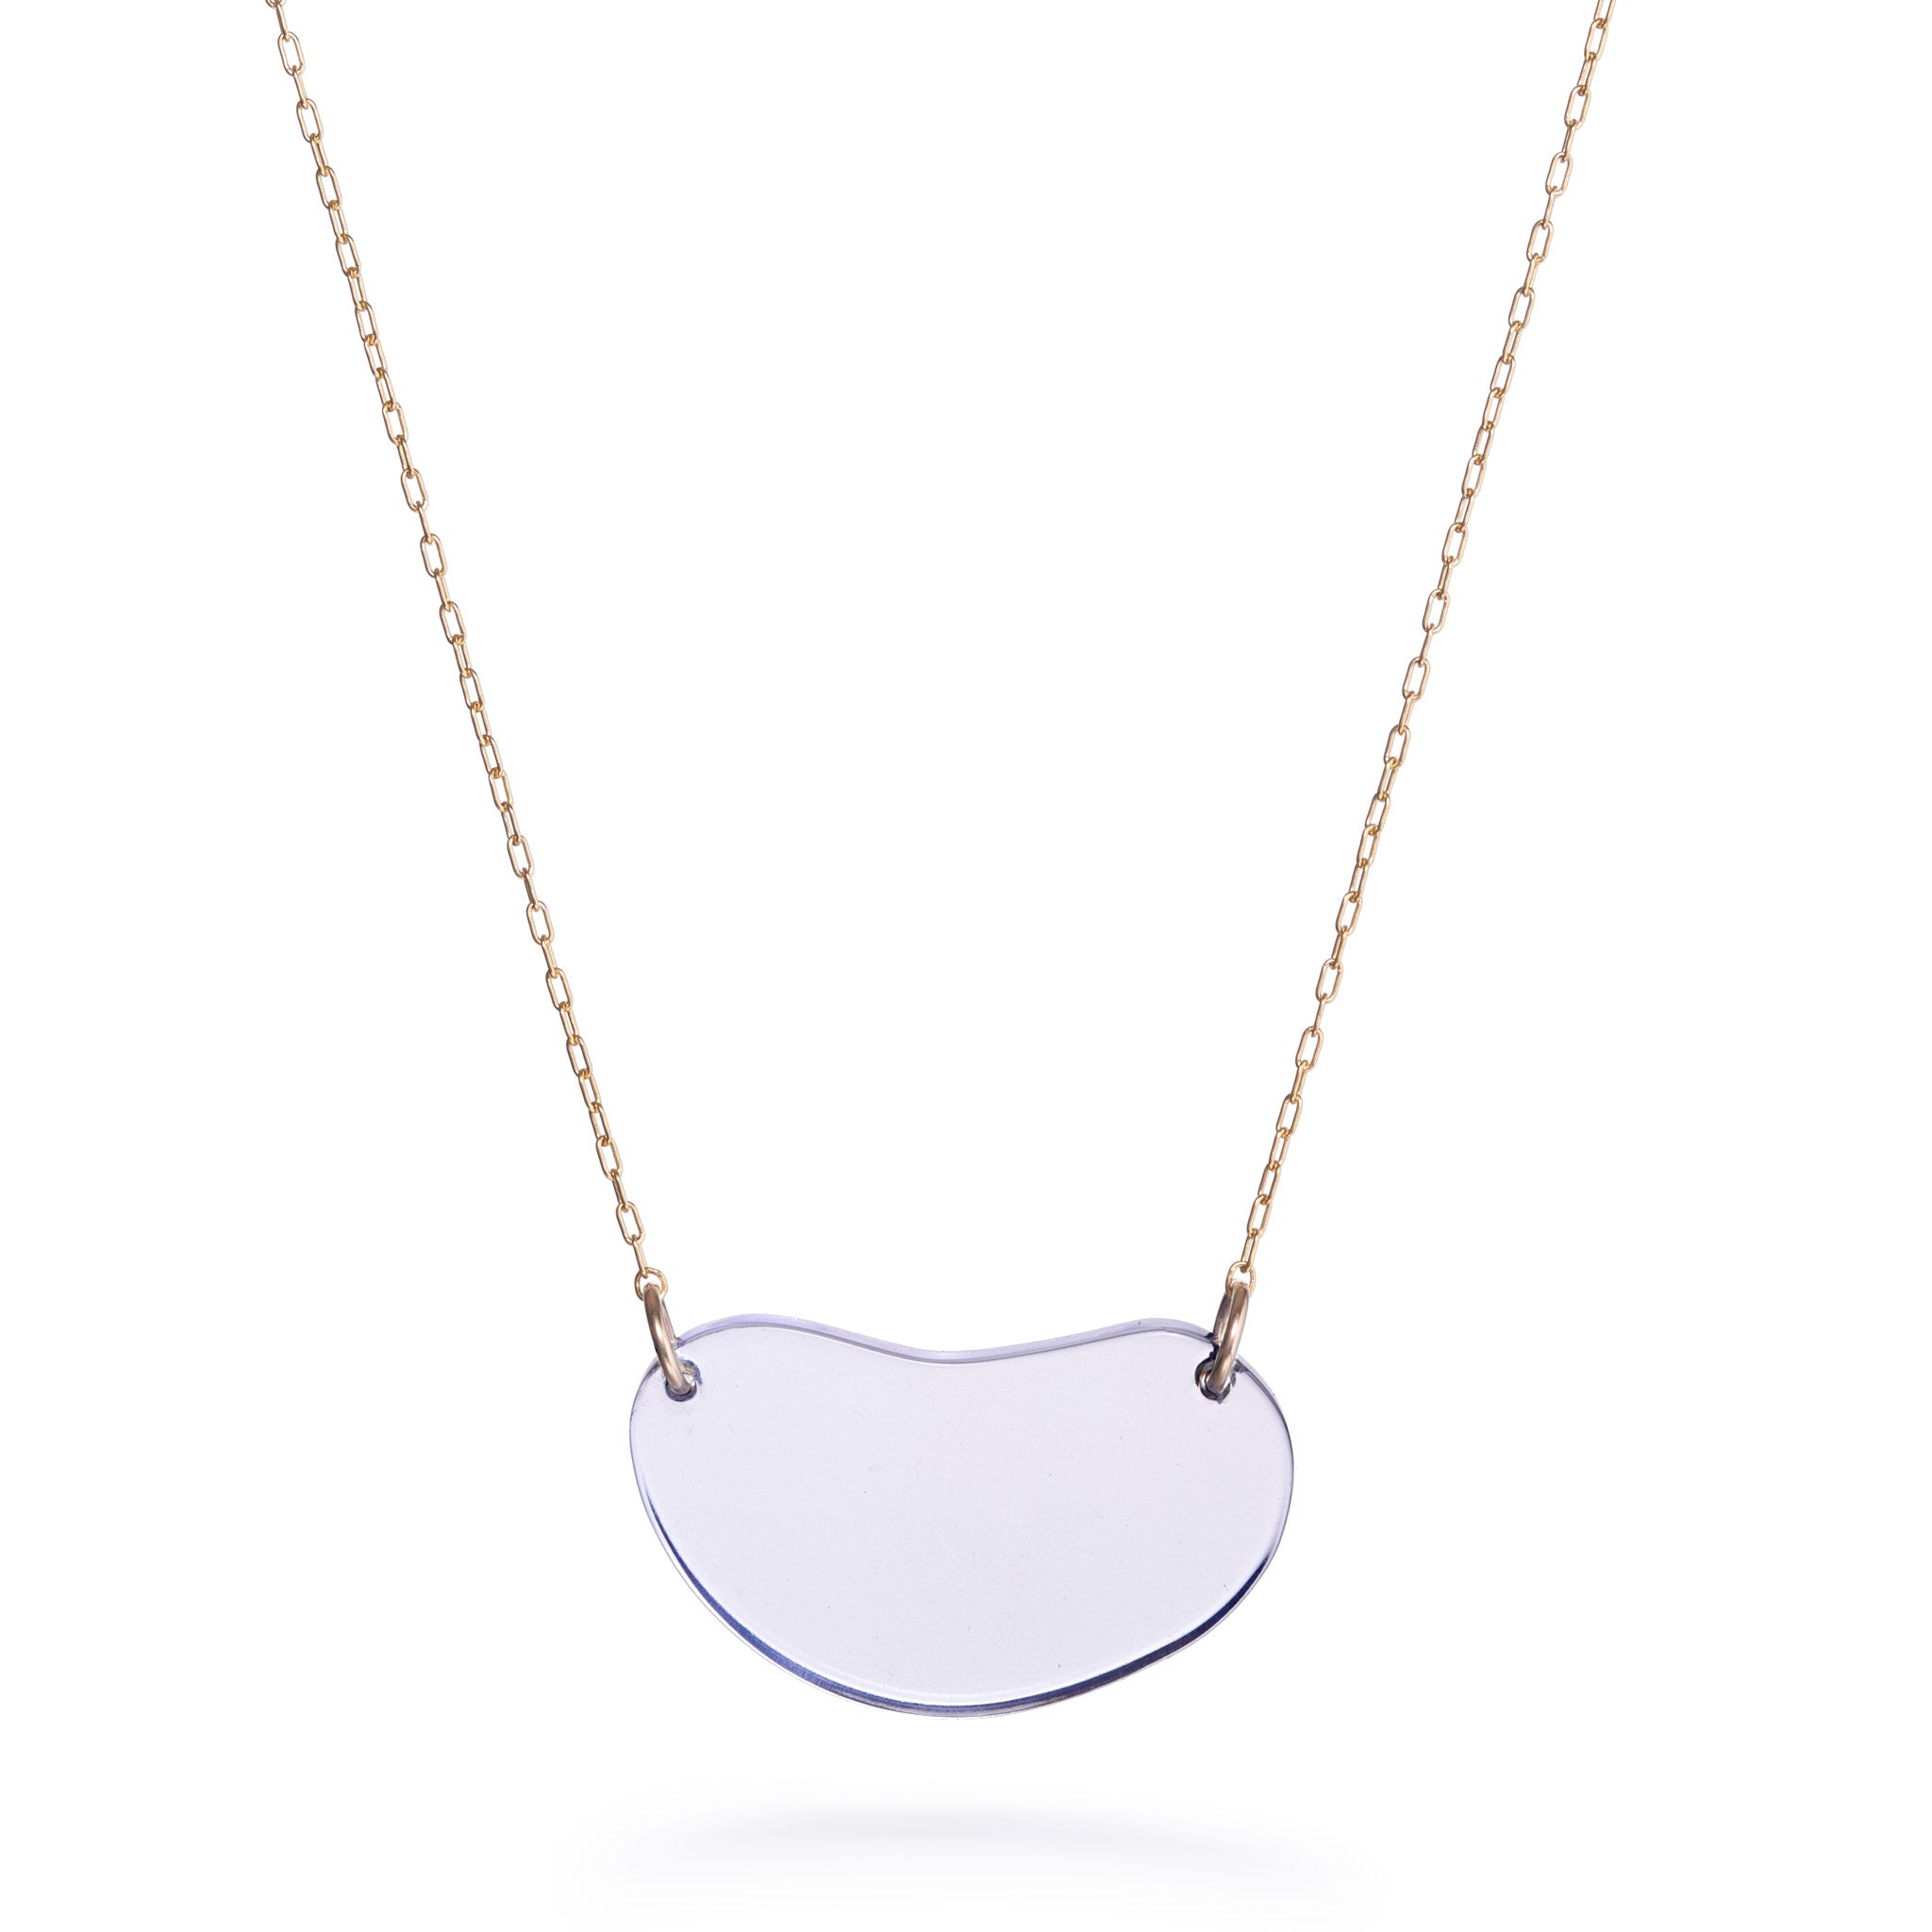 Zuki Necklace - Clear